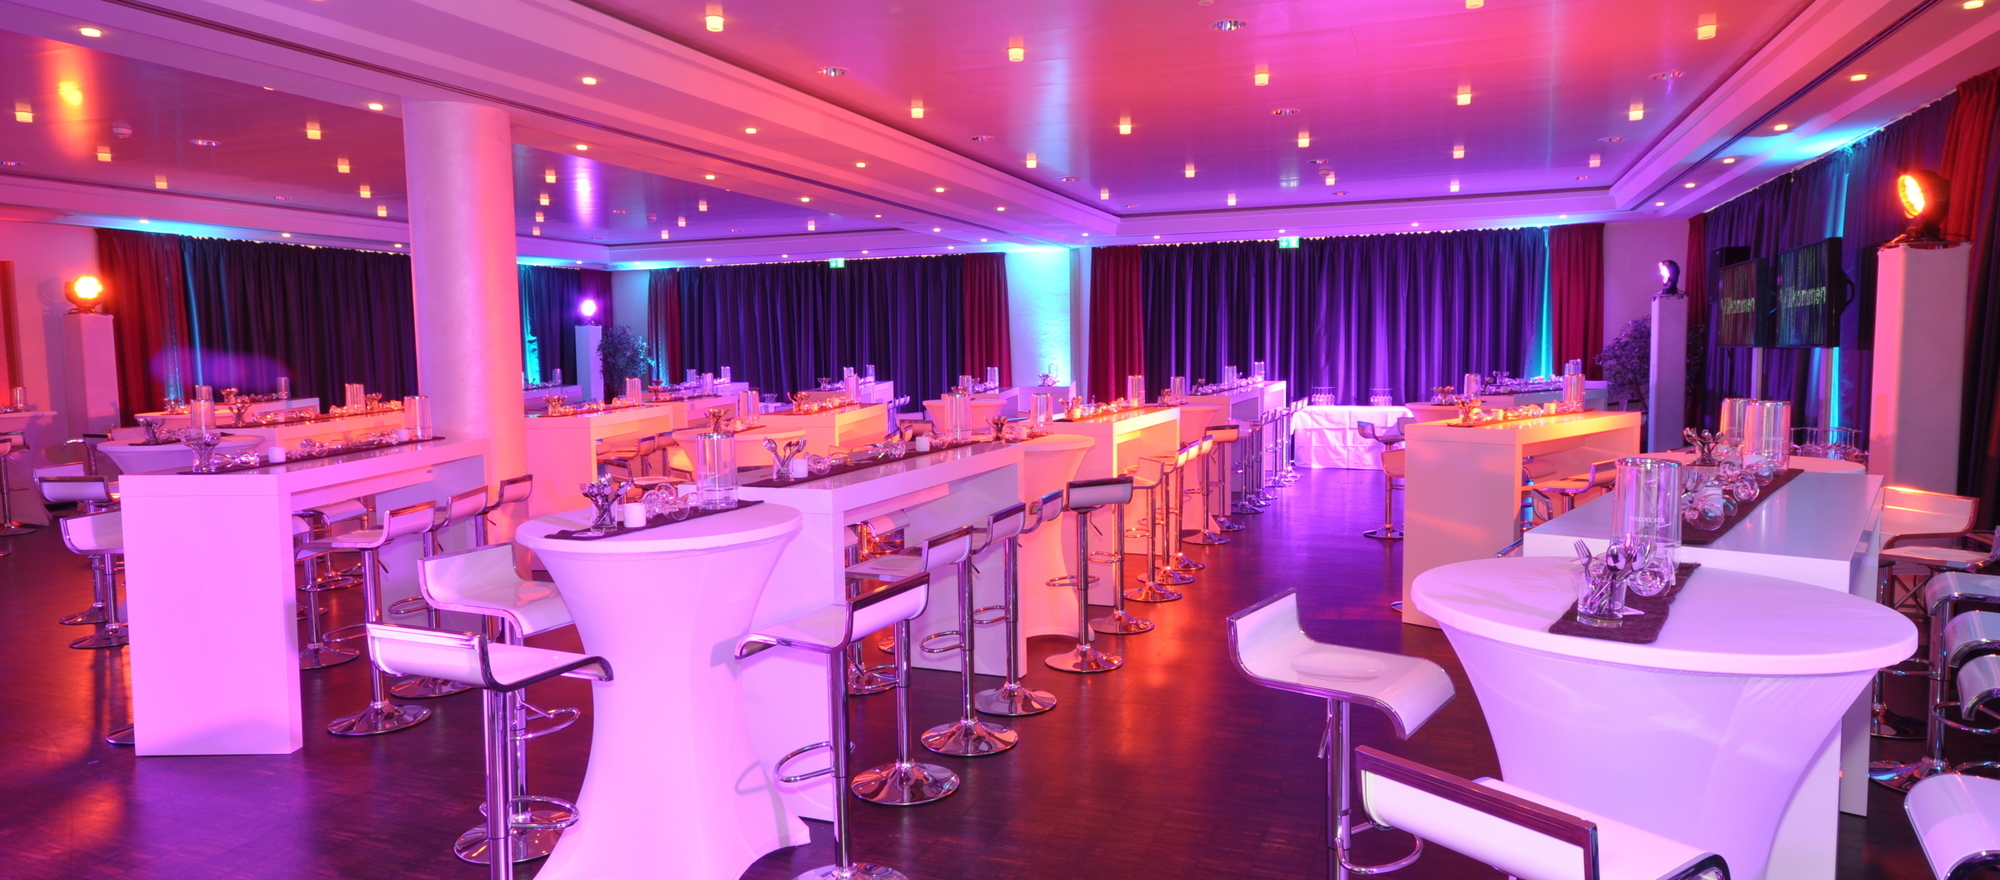 Party Location Corbie Palais in the Ringhotel Niedersachsen in Hoexter, 4 stars hotel in the Weserbergland region